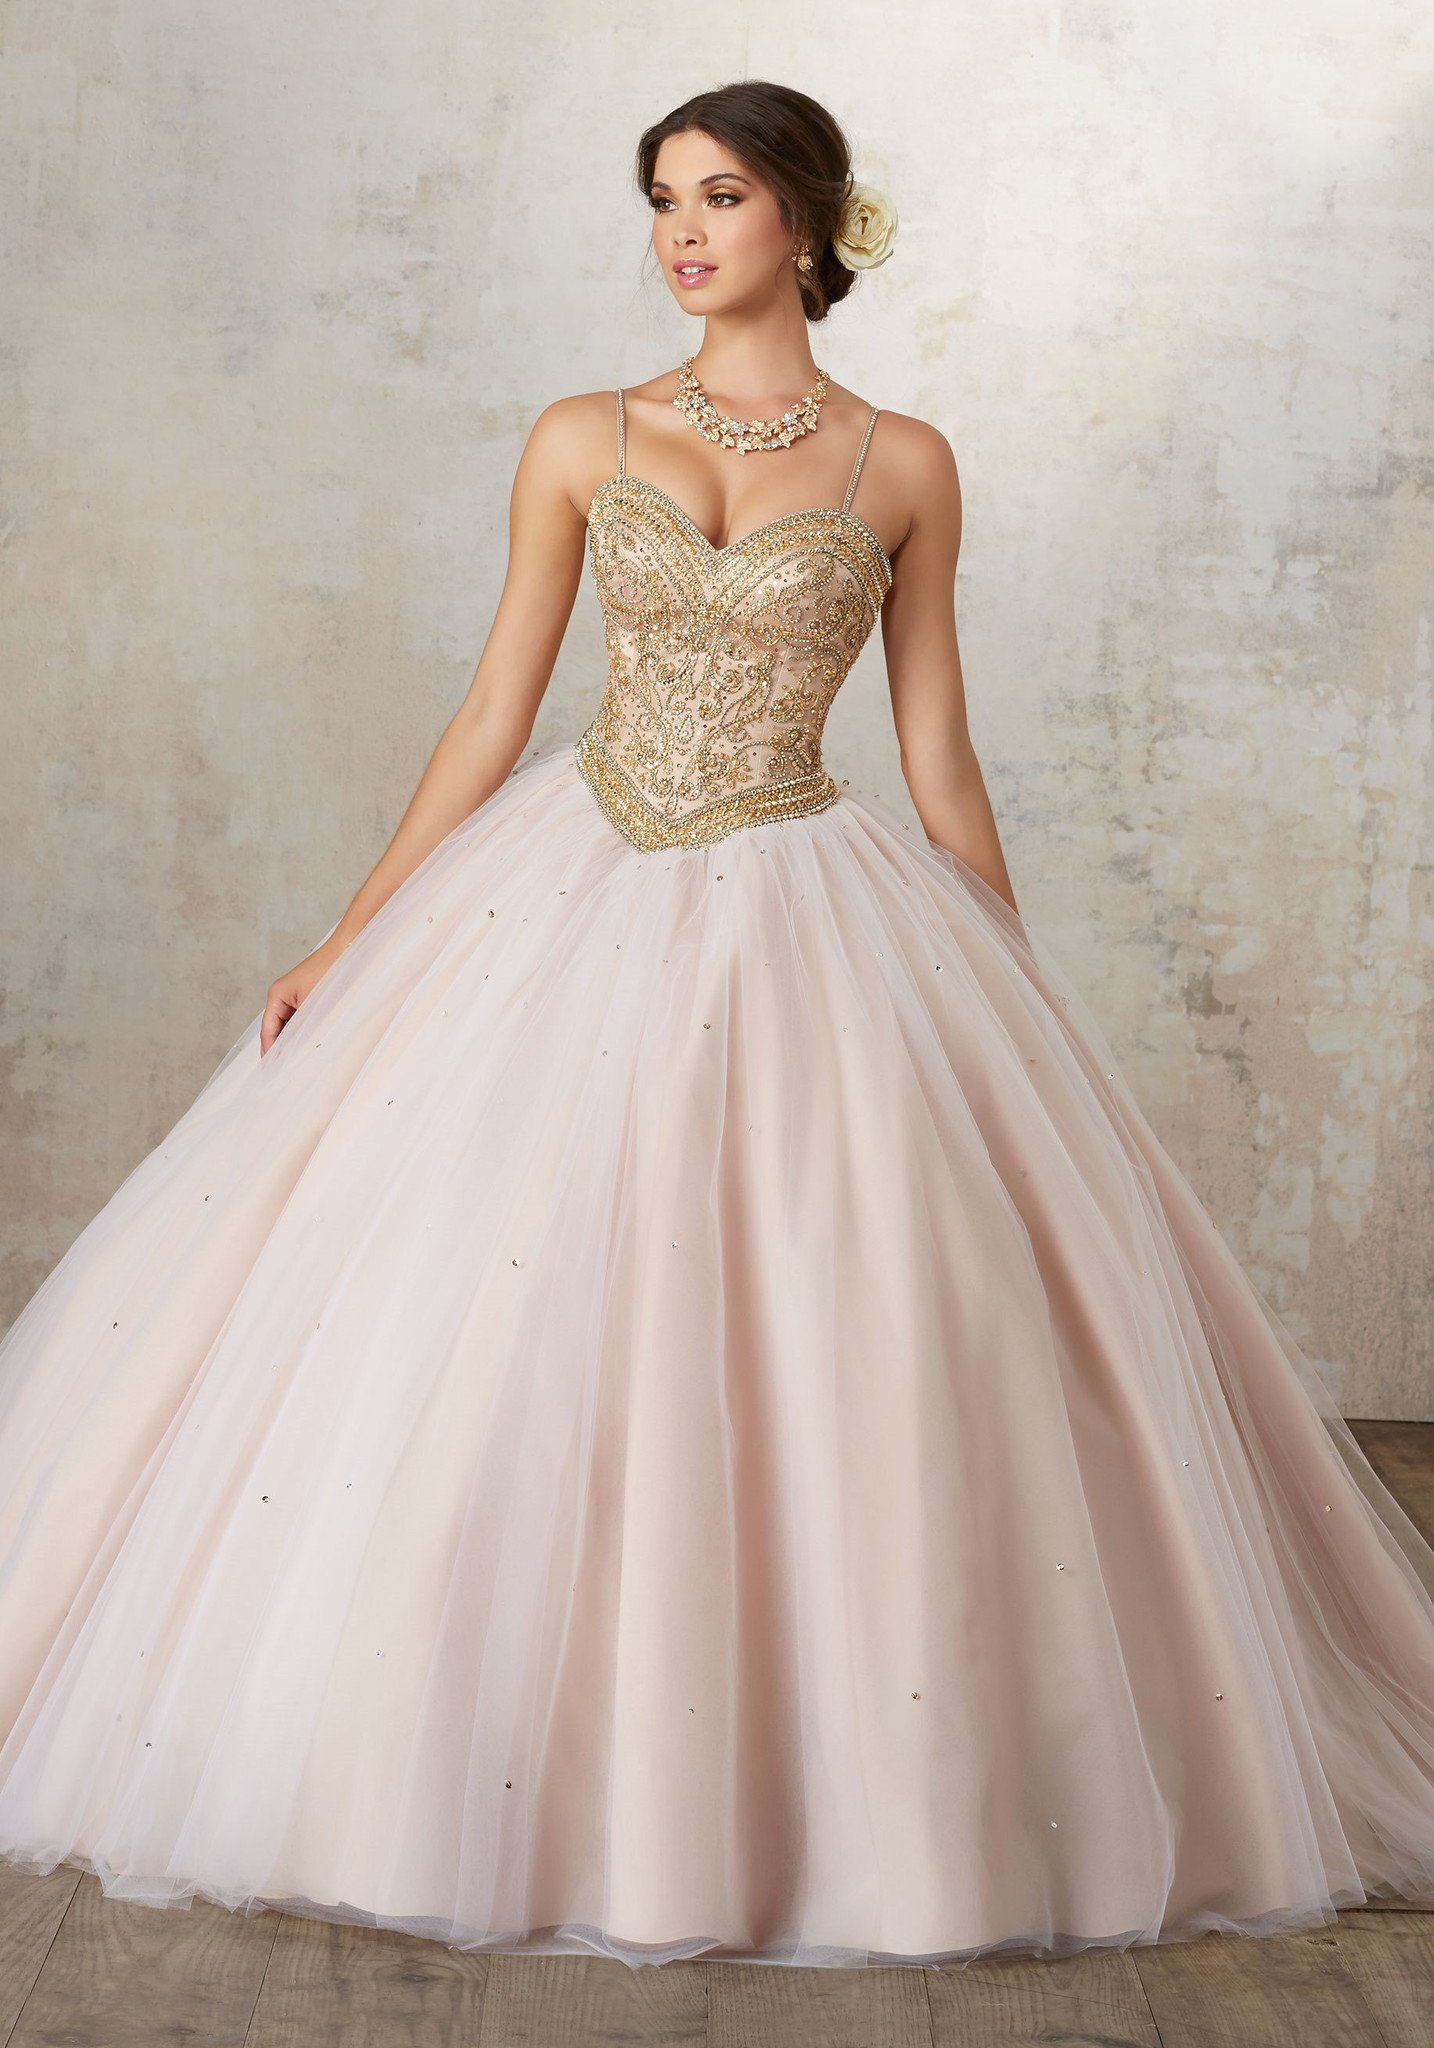 40e668ab82e Gold Beaded Sweetheart Quinceanera Dress by Mori Lee Vizcaya 89133 ...